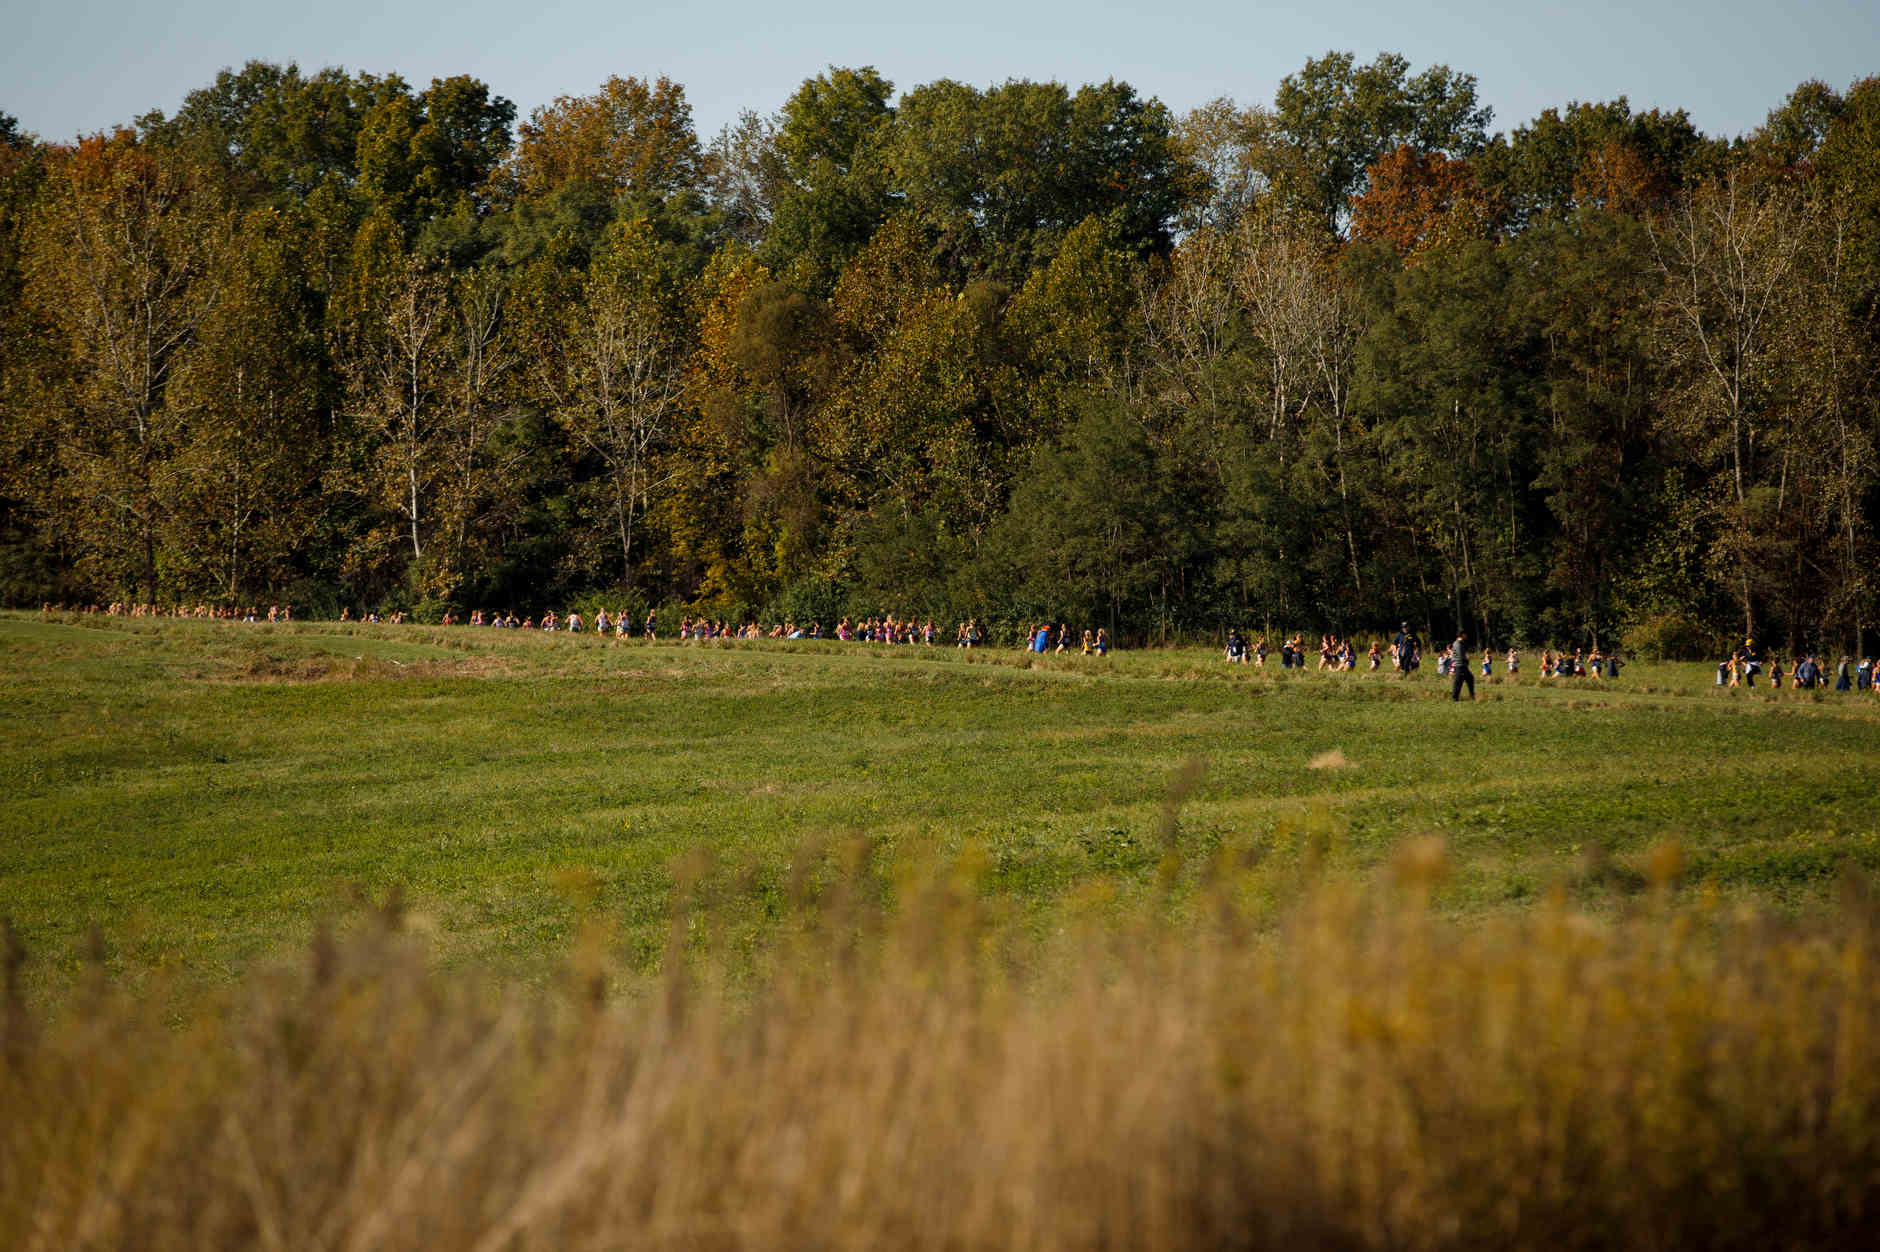 Runners race down the backstretch during the Indiana State Pre-National Cross Country Invitational in Terre Haute, Indiana on Saturday, Oct. 19, 2019. (Photo by James Brosher)